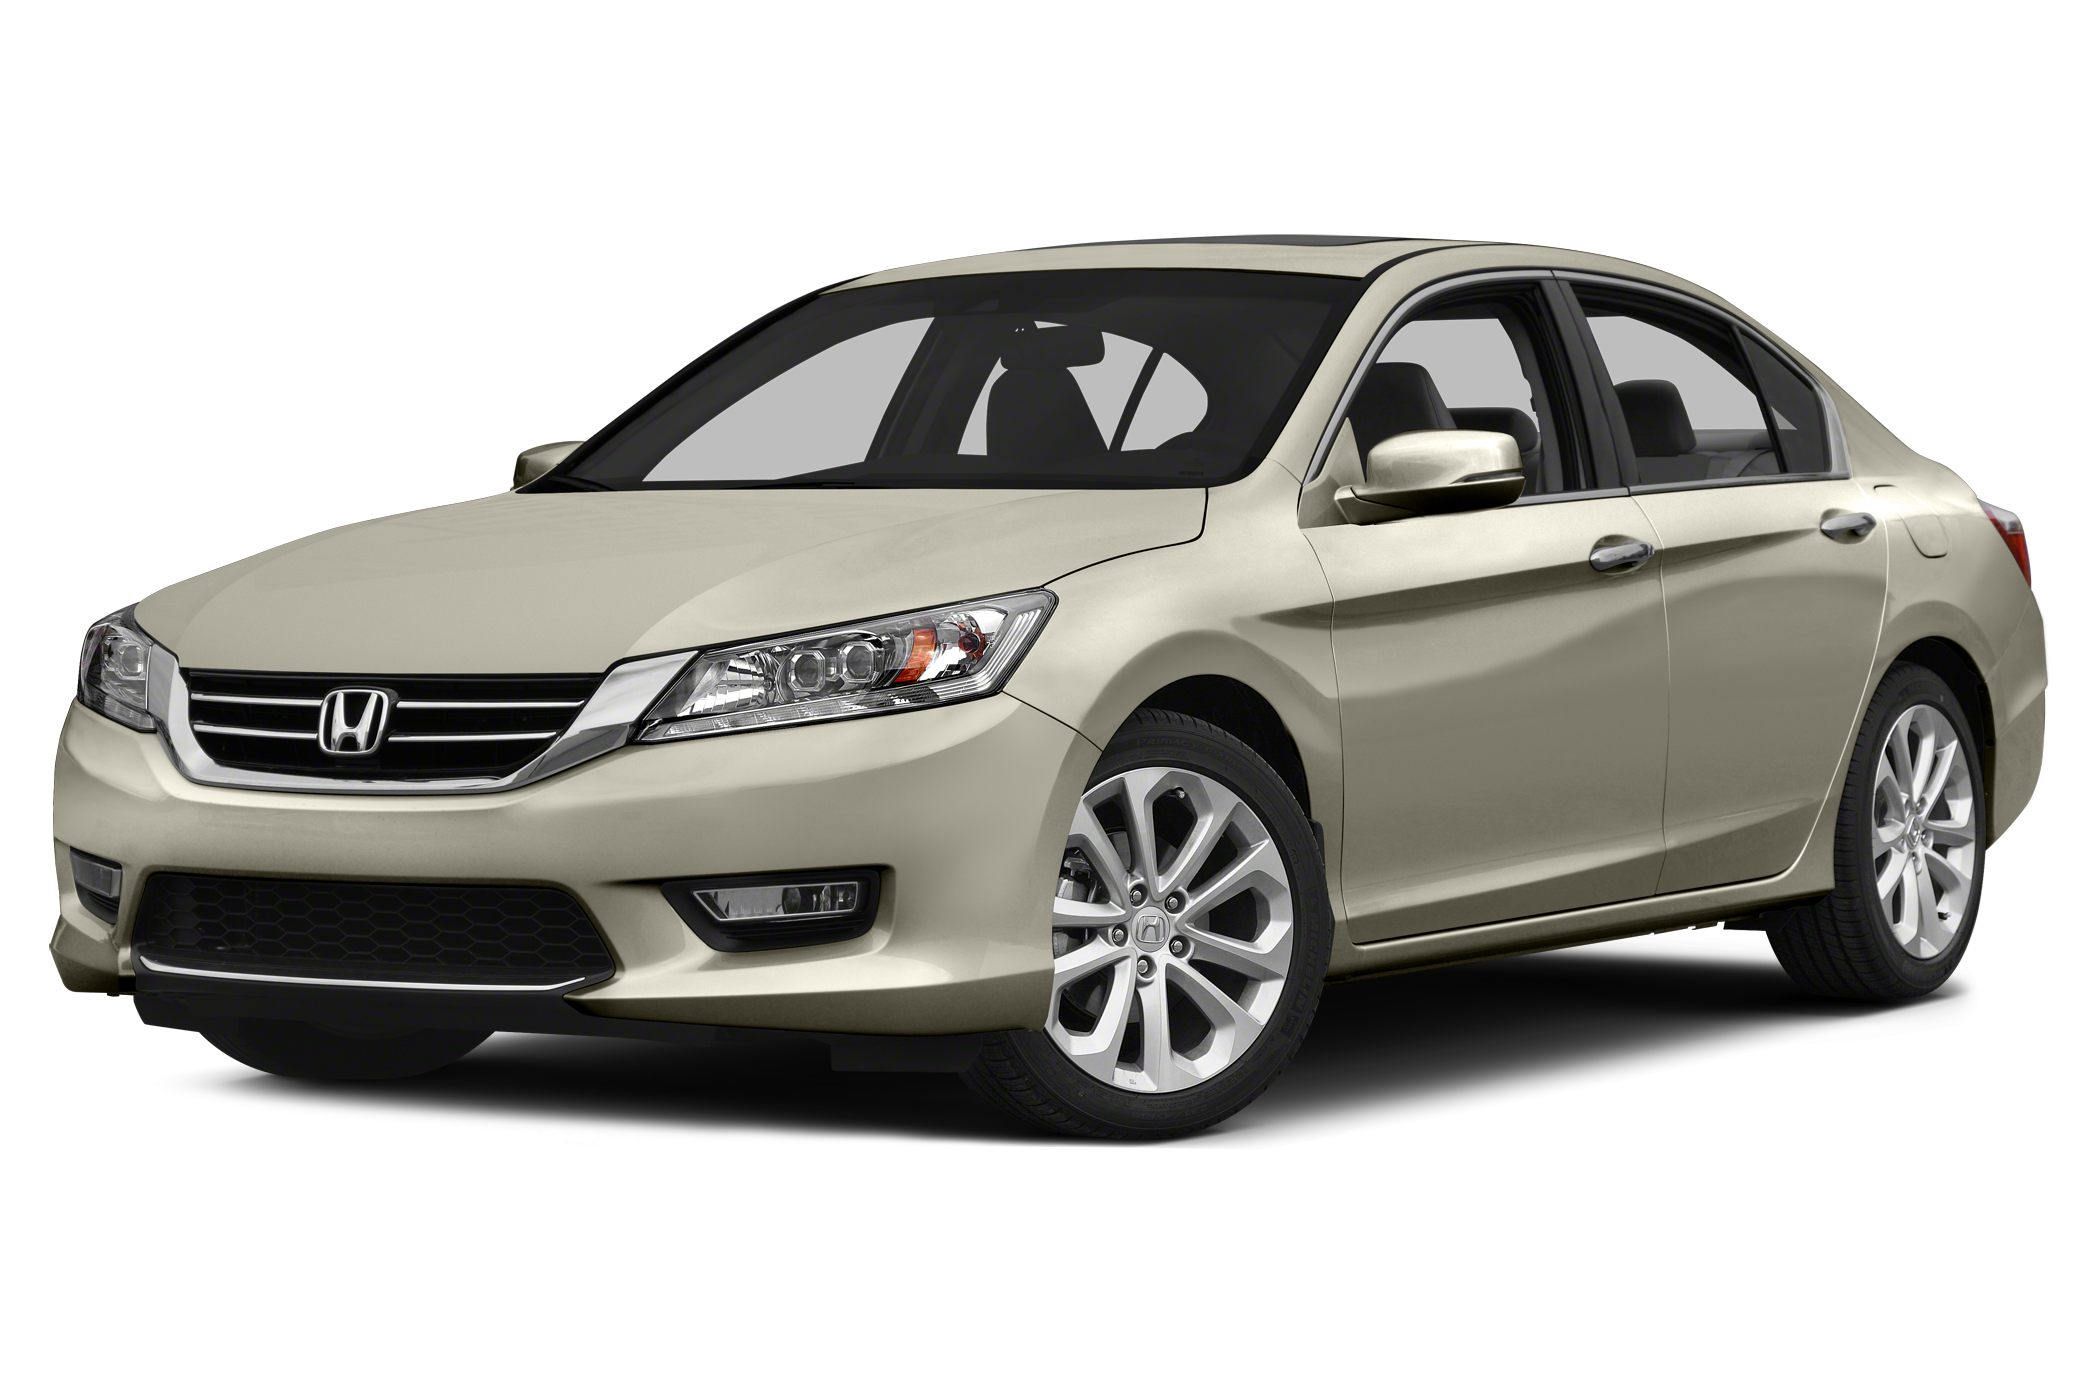 2014-Honda-Accord-Sedan-LX-4dr-Sedan-Photo